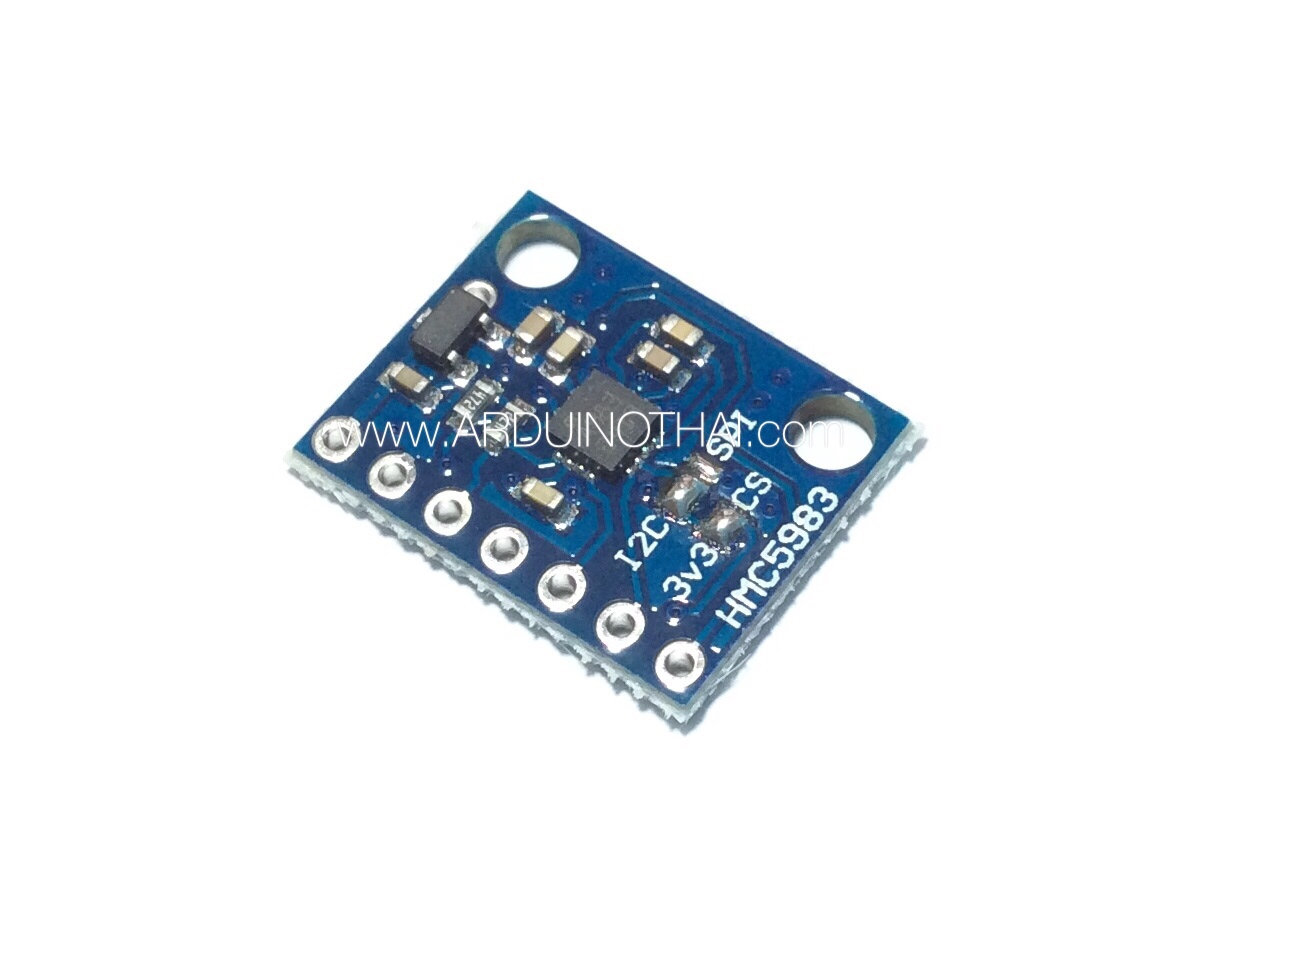 3-axis Compass Module with Temperature Compensated (HMC5983)